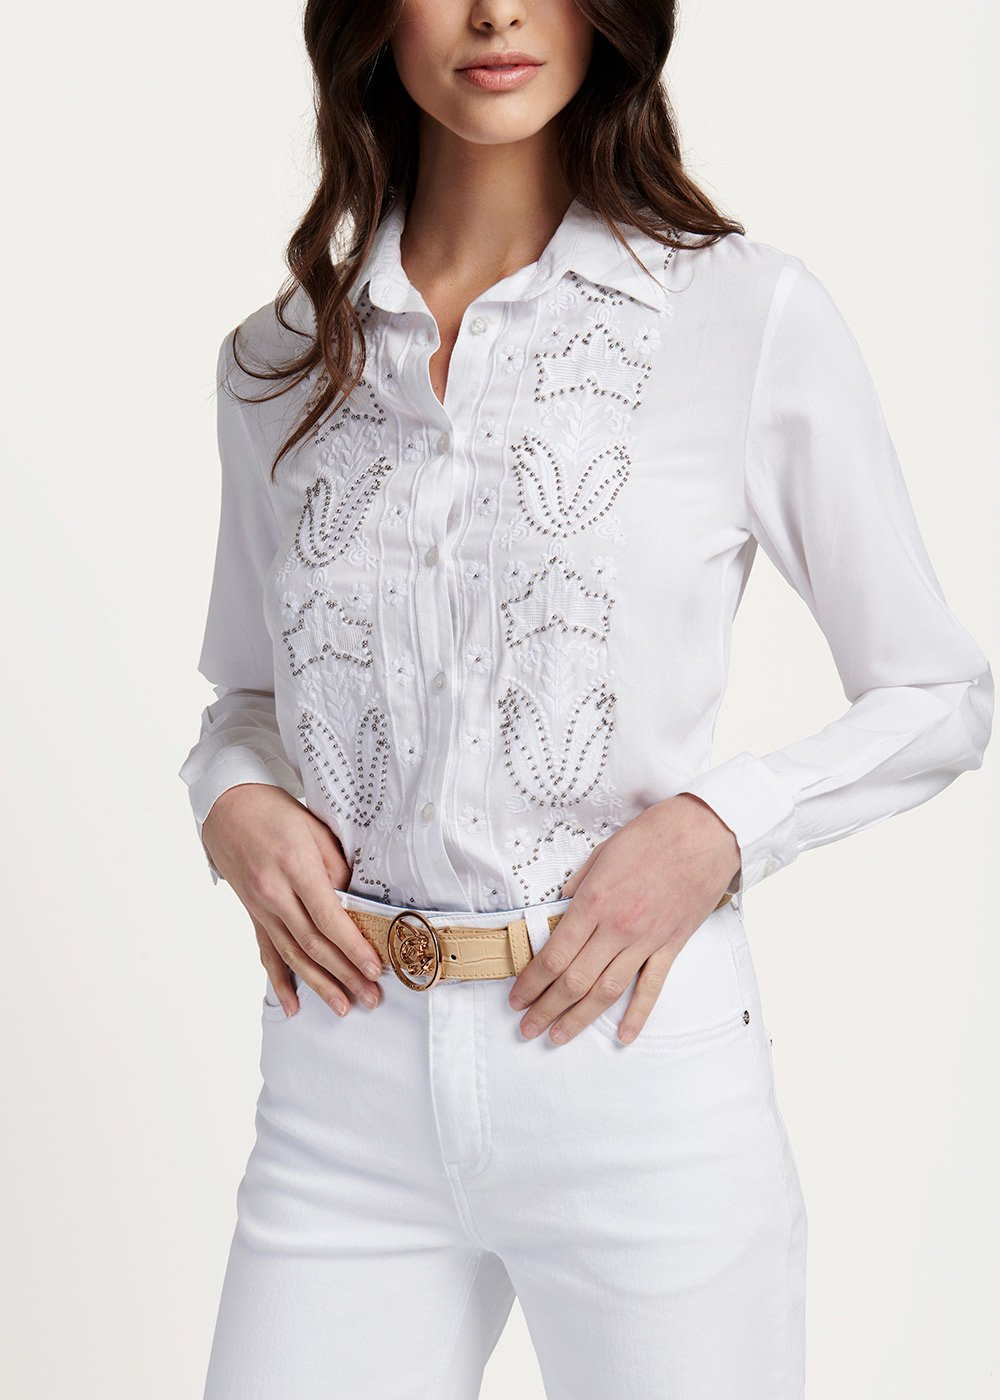 Corinne shirt with gun metal details - White - Woman